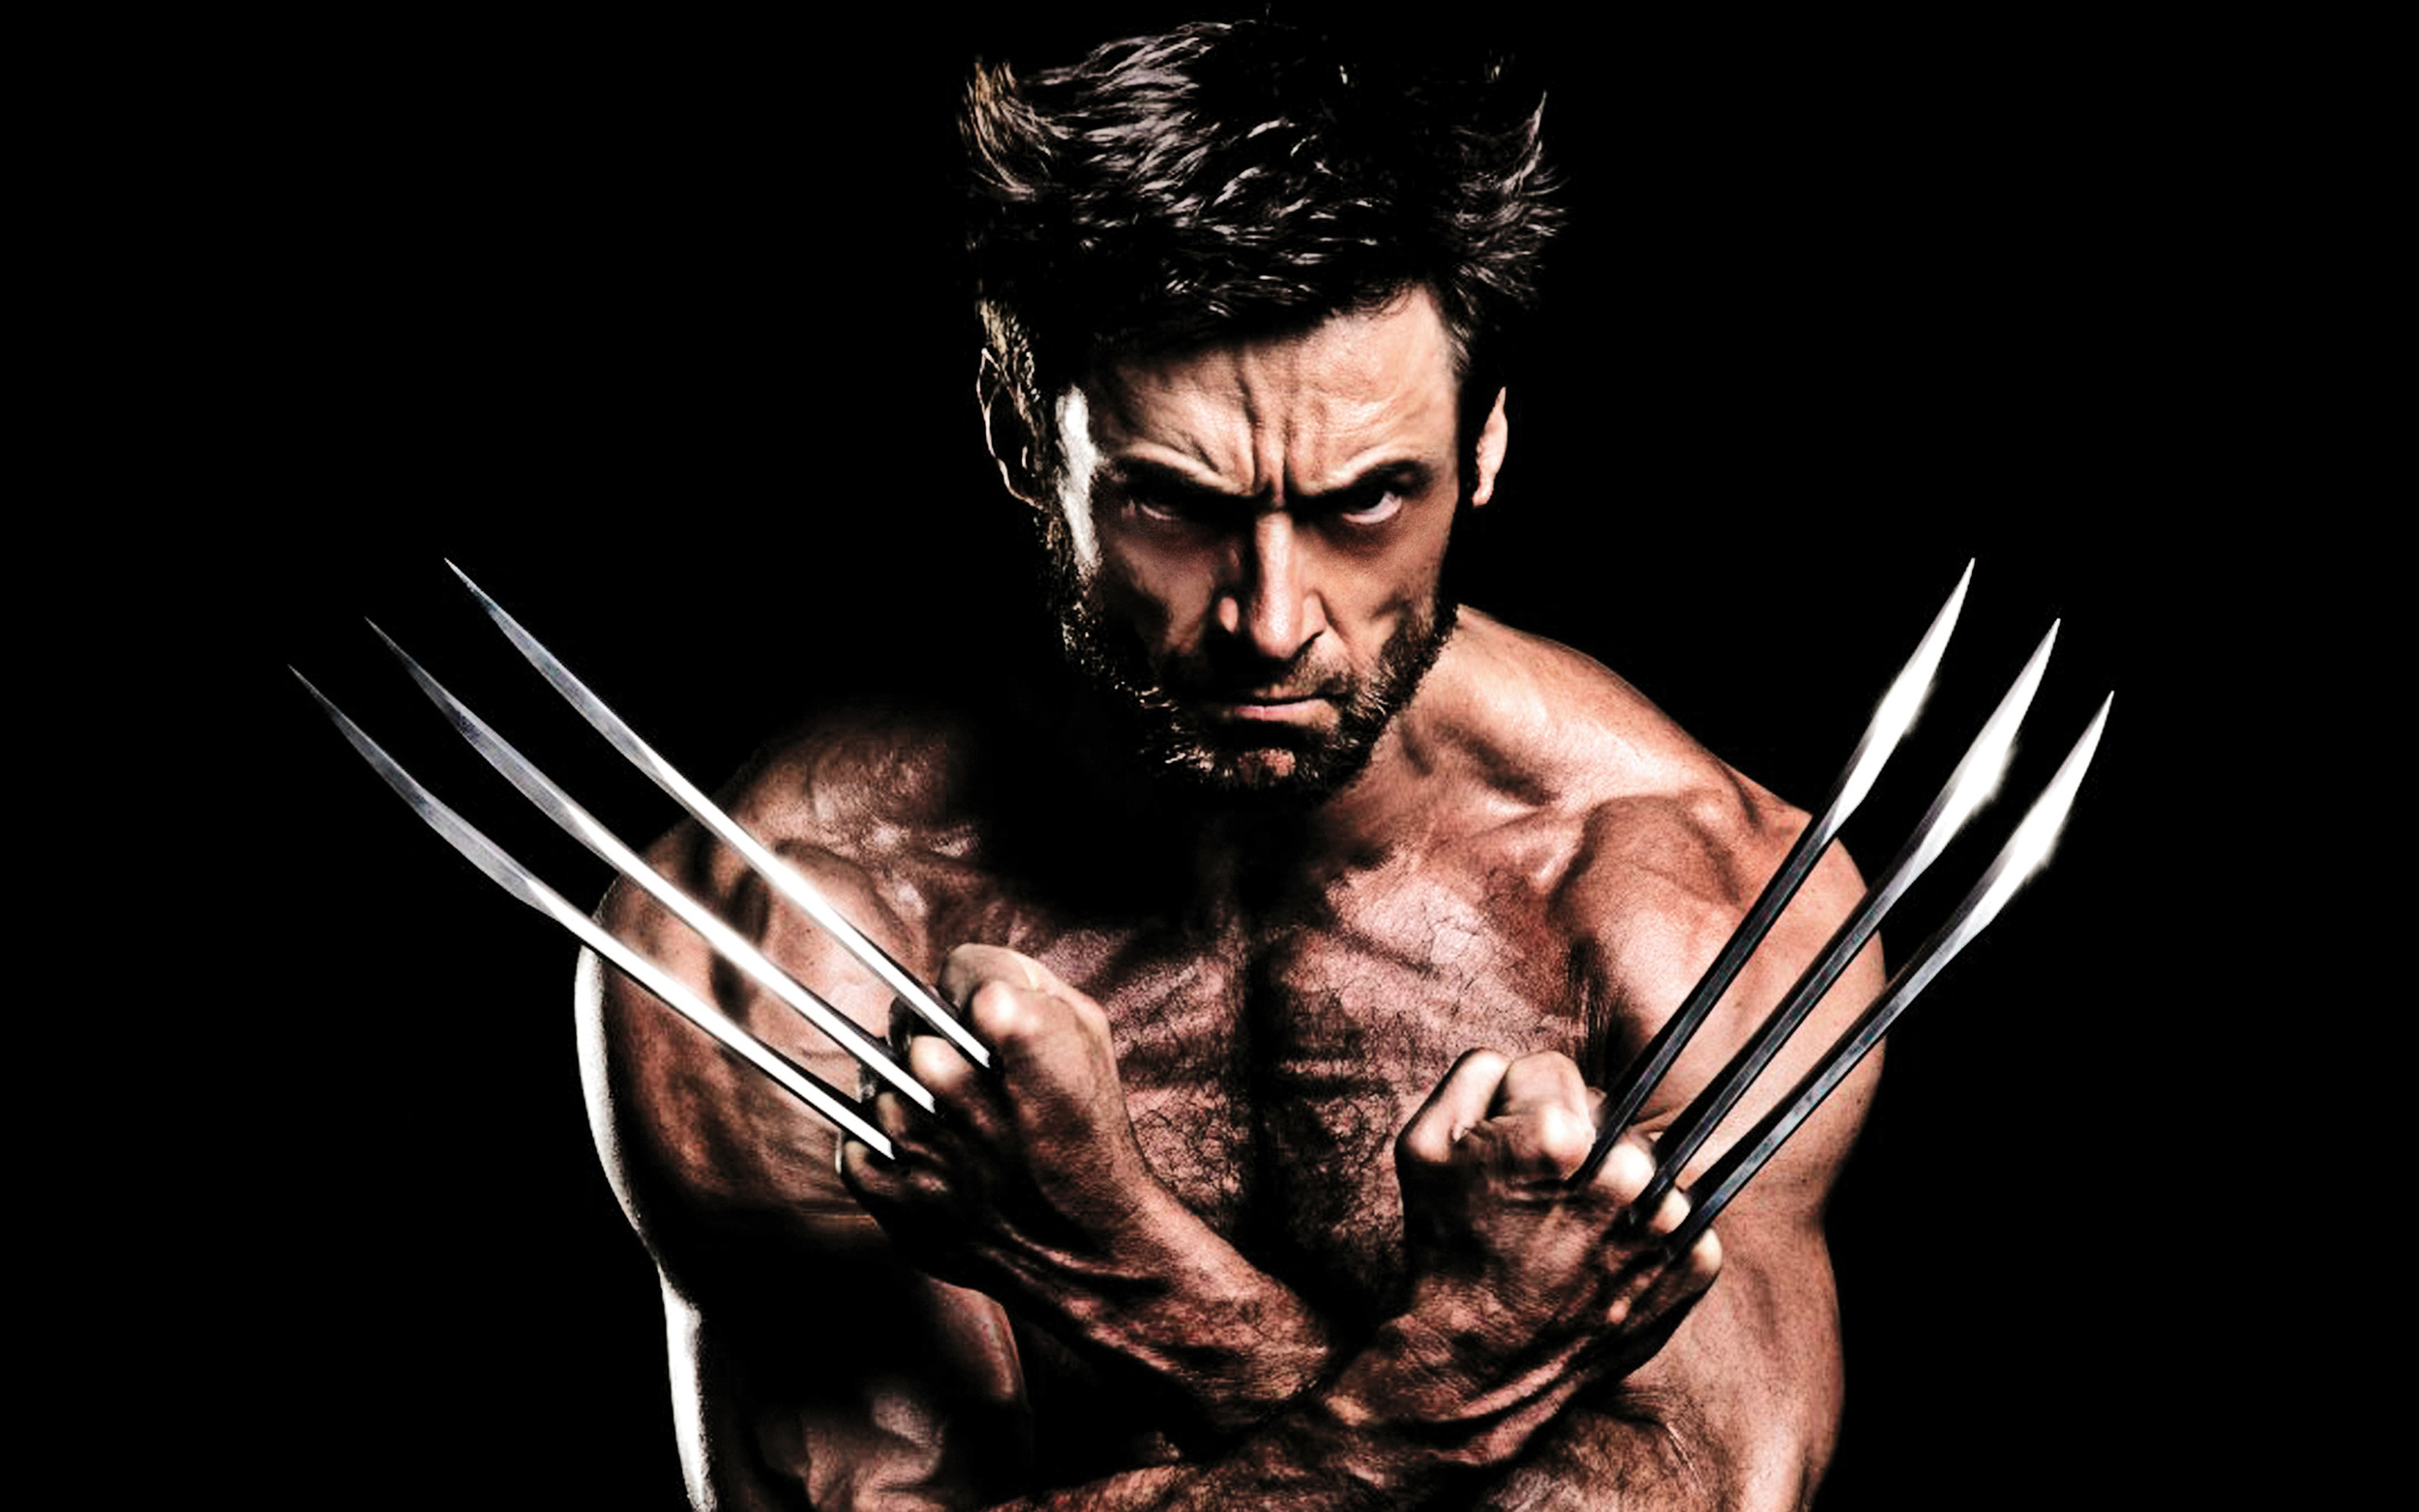 is-hugh-jackman-hanging-up-his-wolverine-claws-after-days-of-future-past-header.jpg